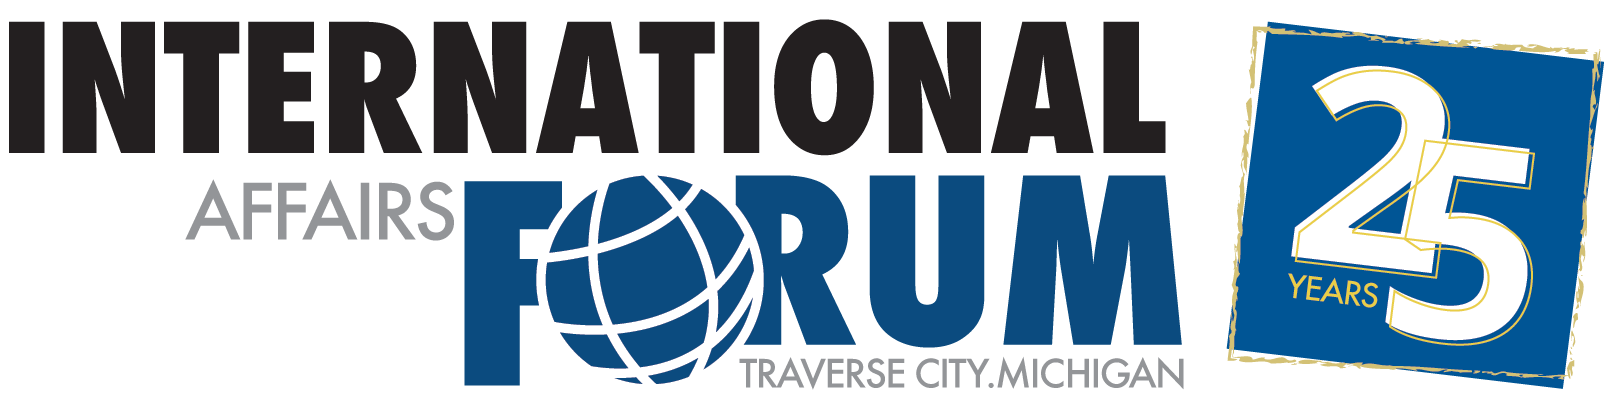 Inetrnational Affairs Forum logo